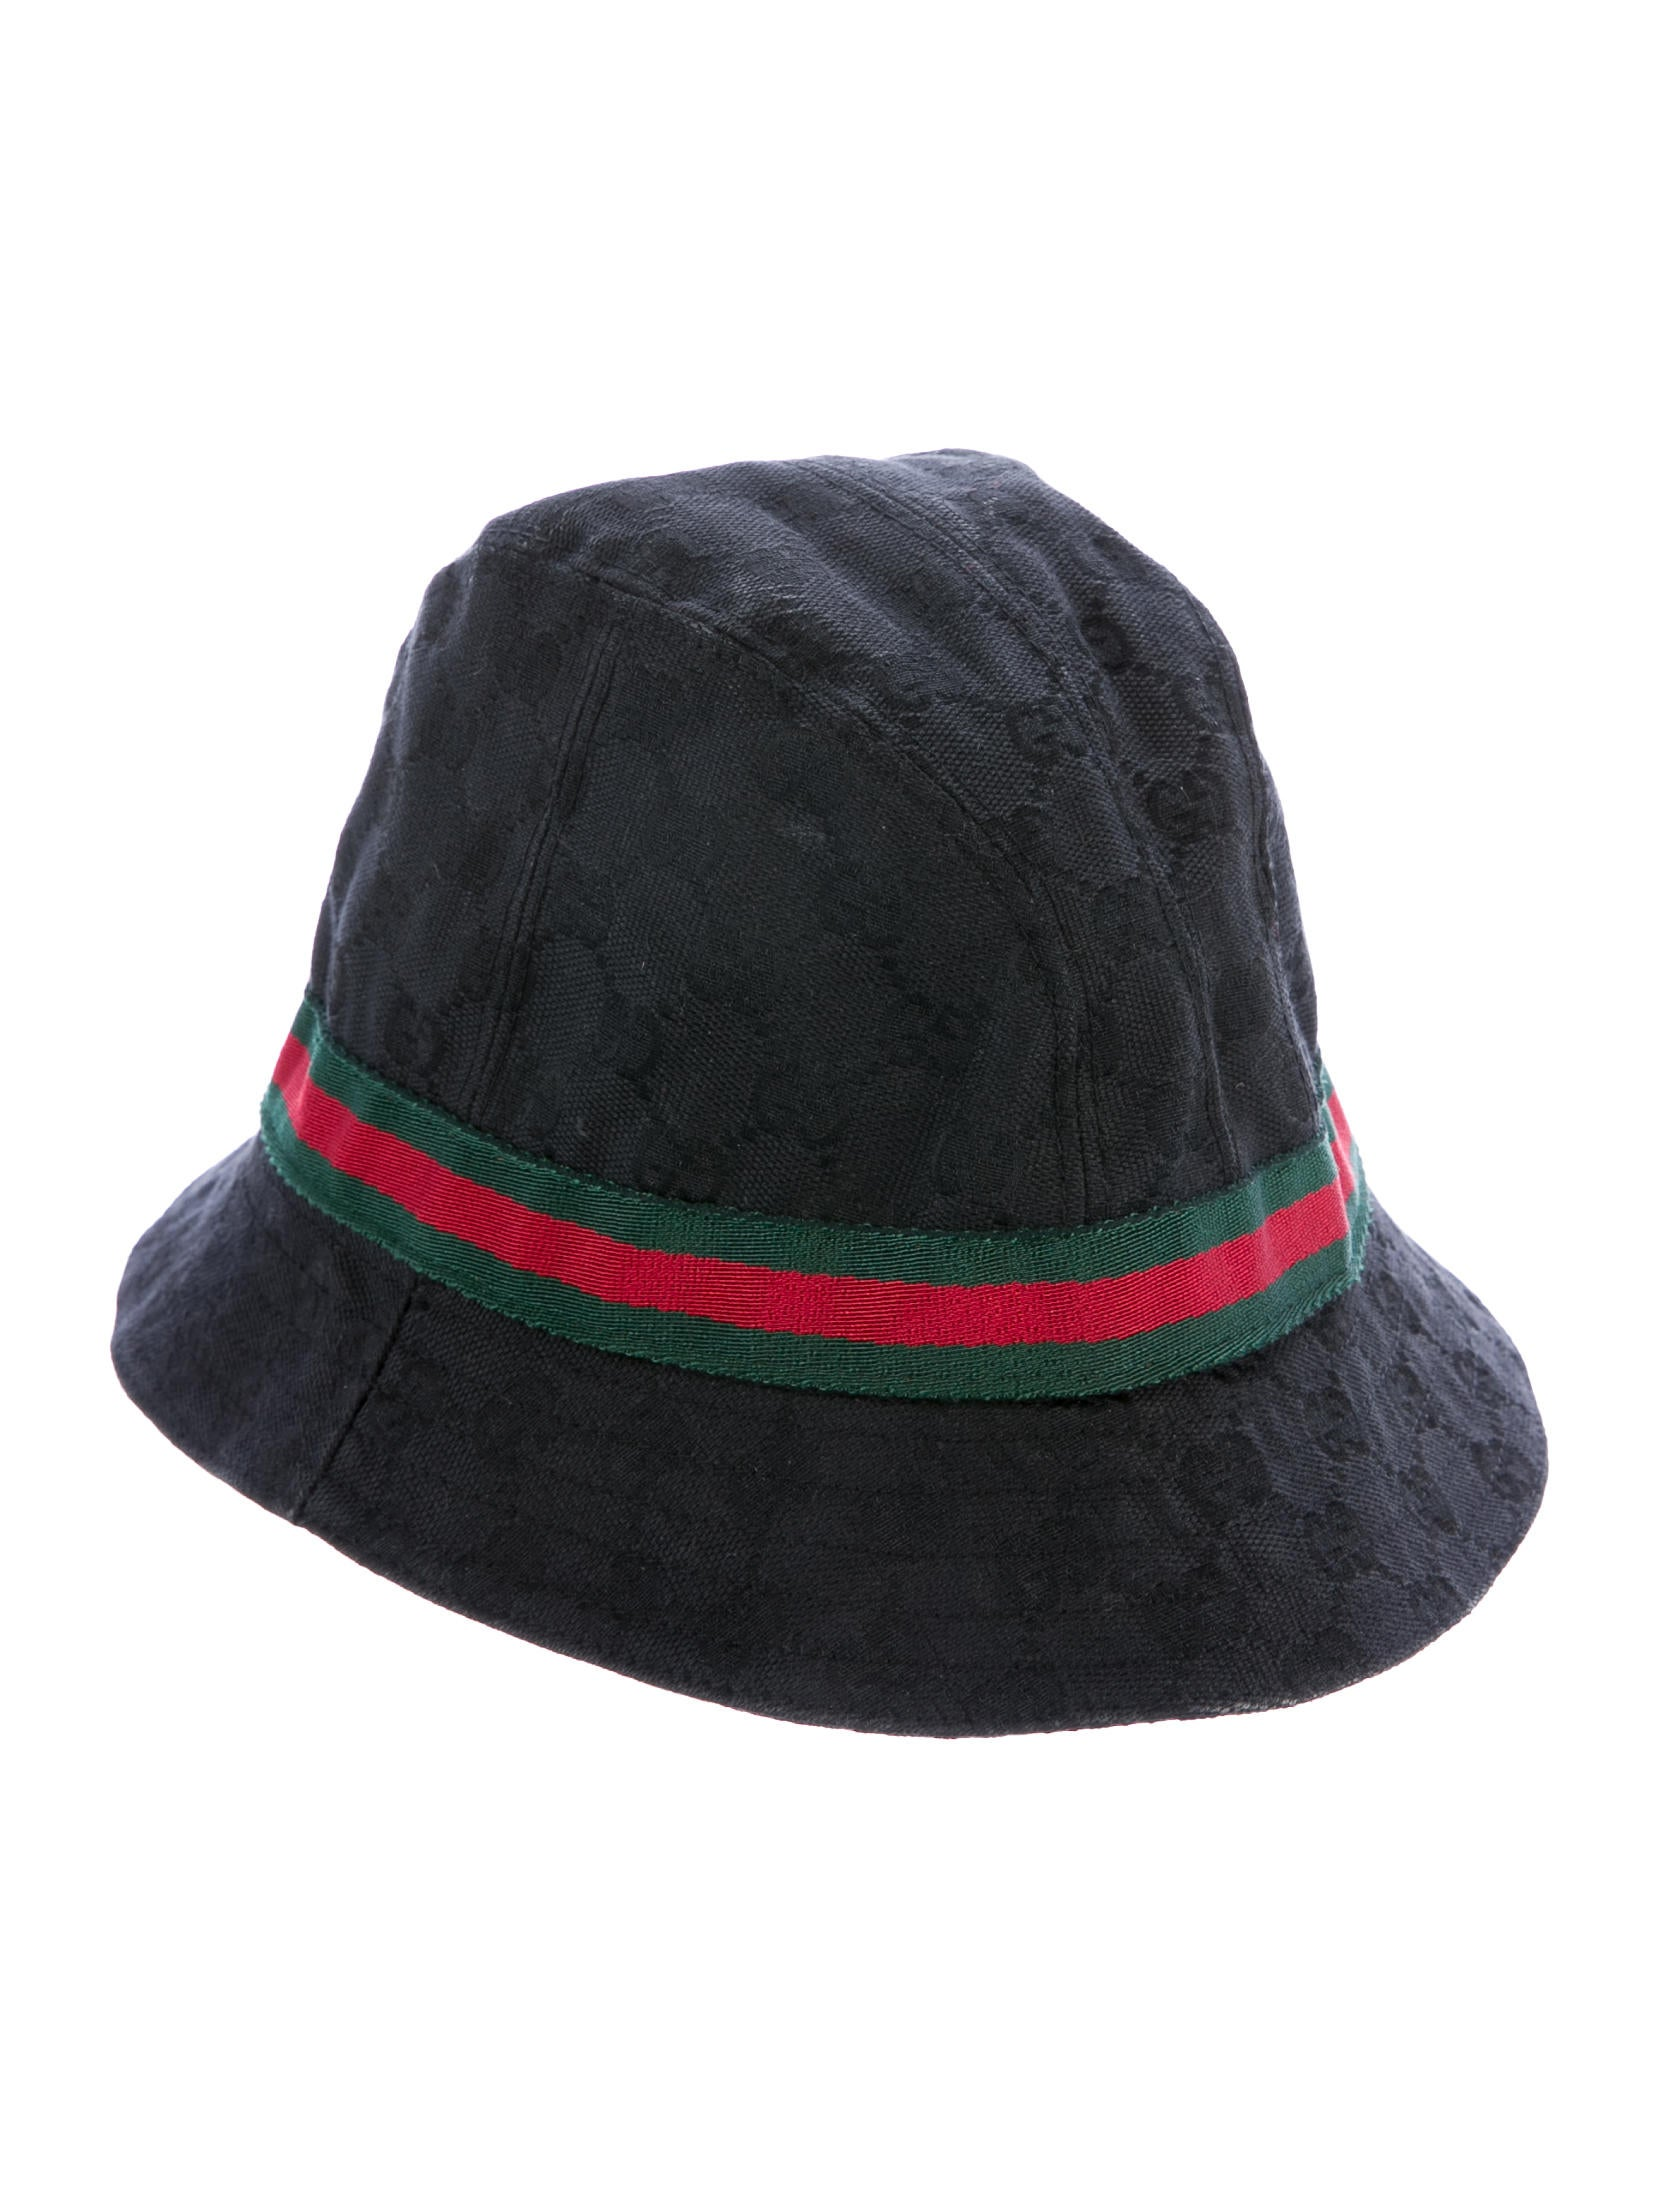 Gucci GG Web Bucket Hat - Accessories - GUC172044  ce5f40242f1